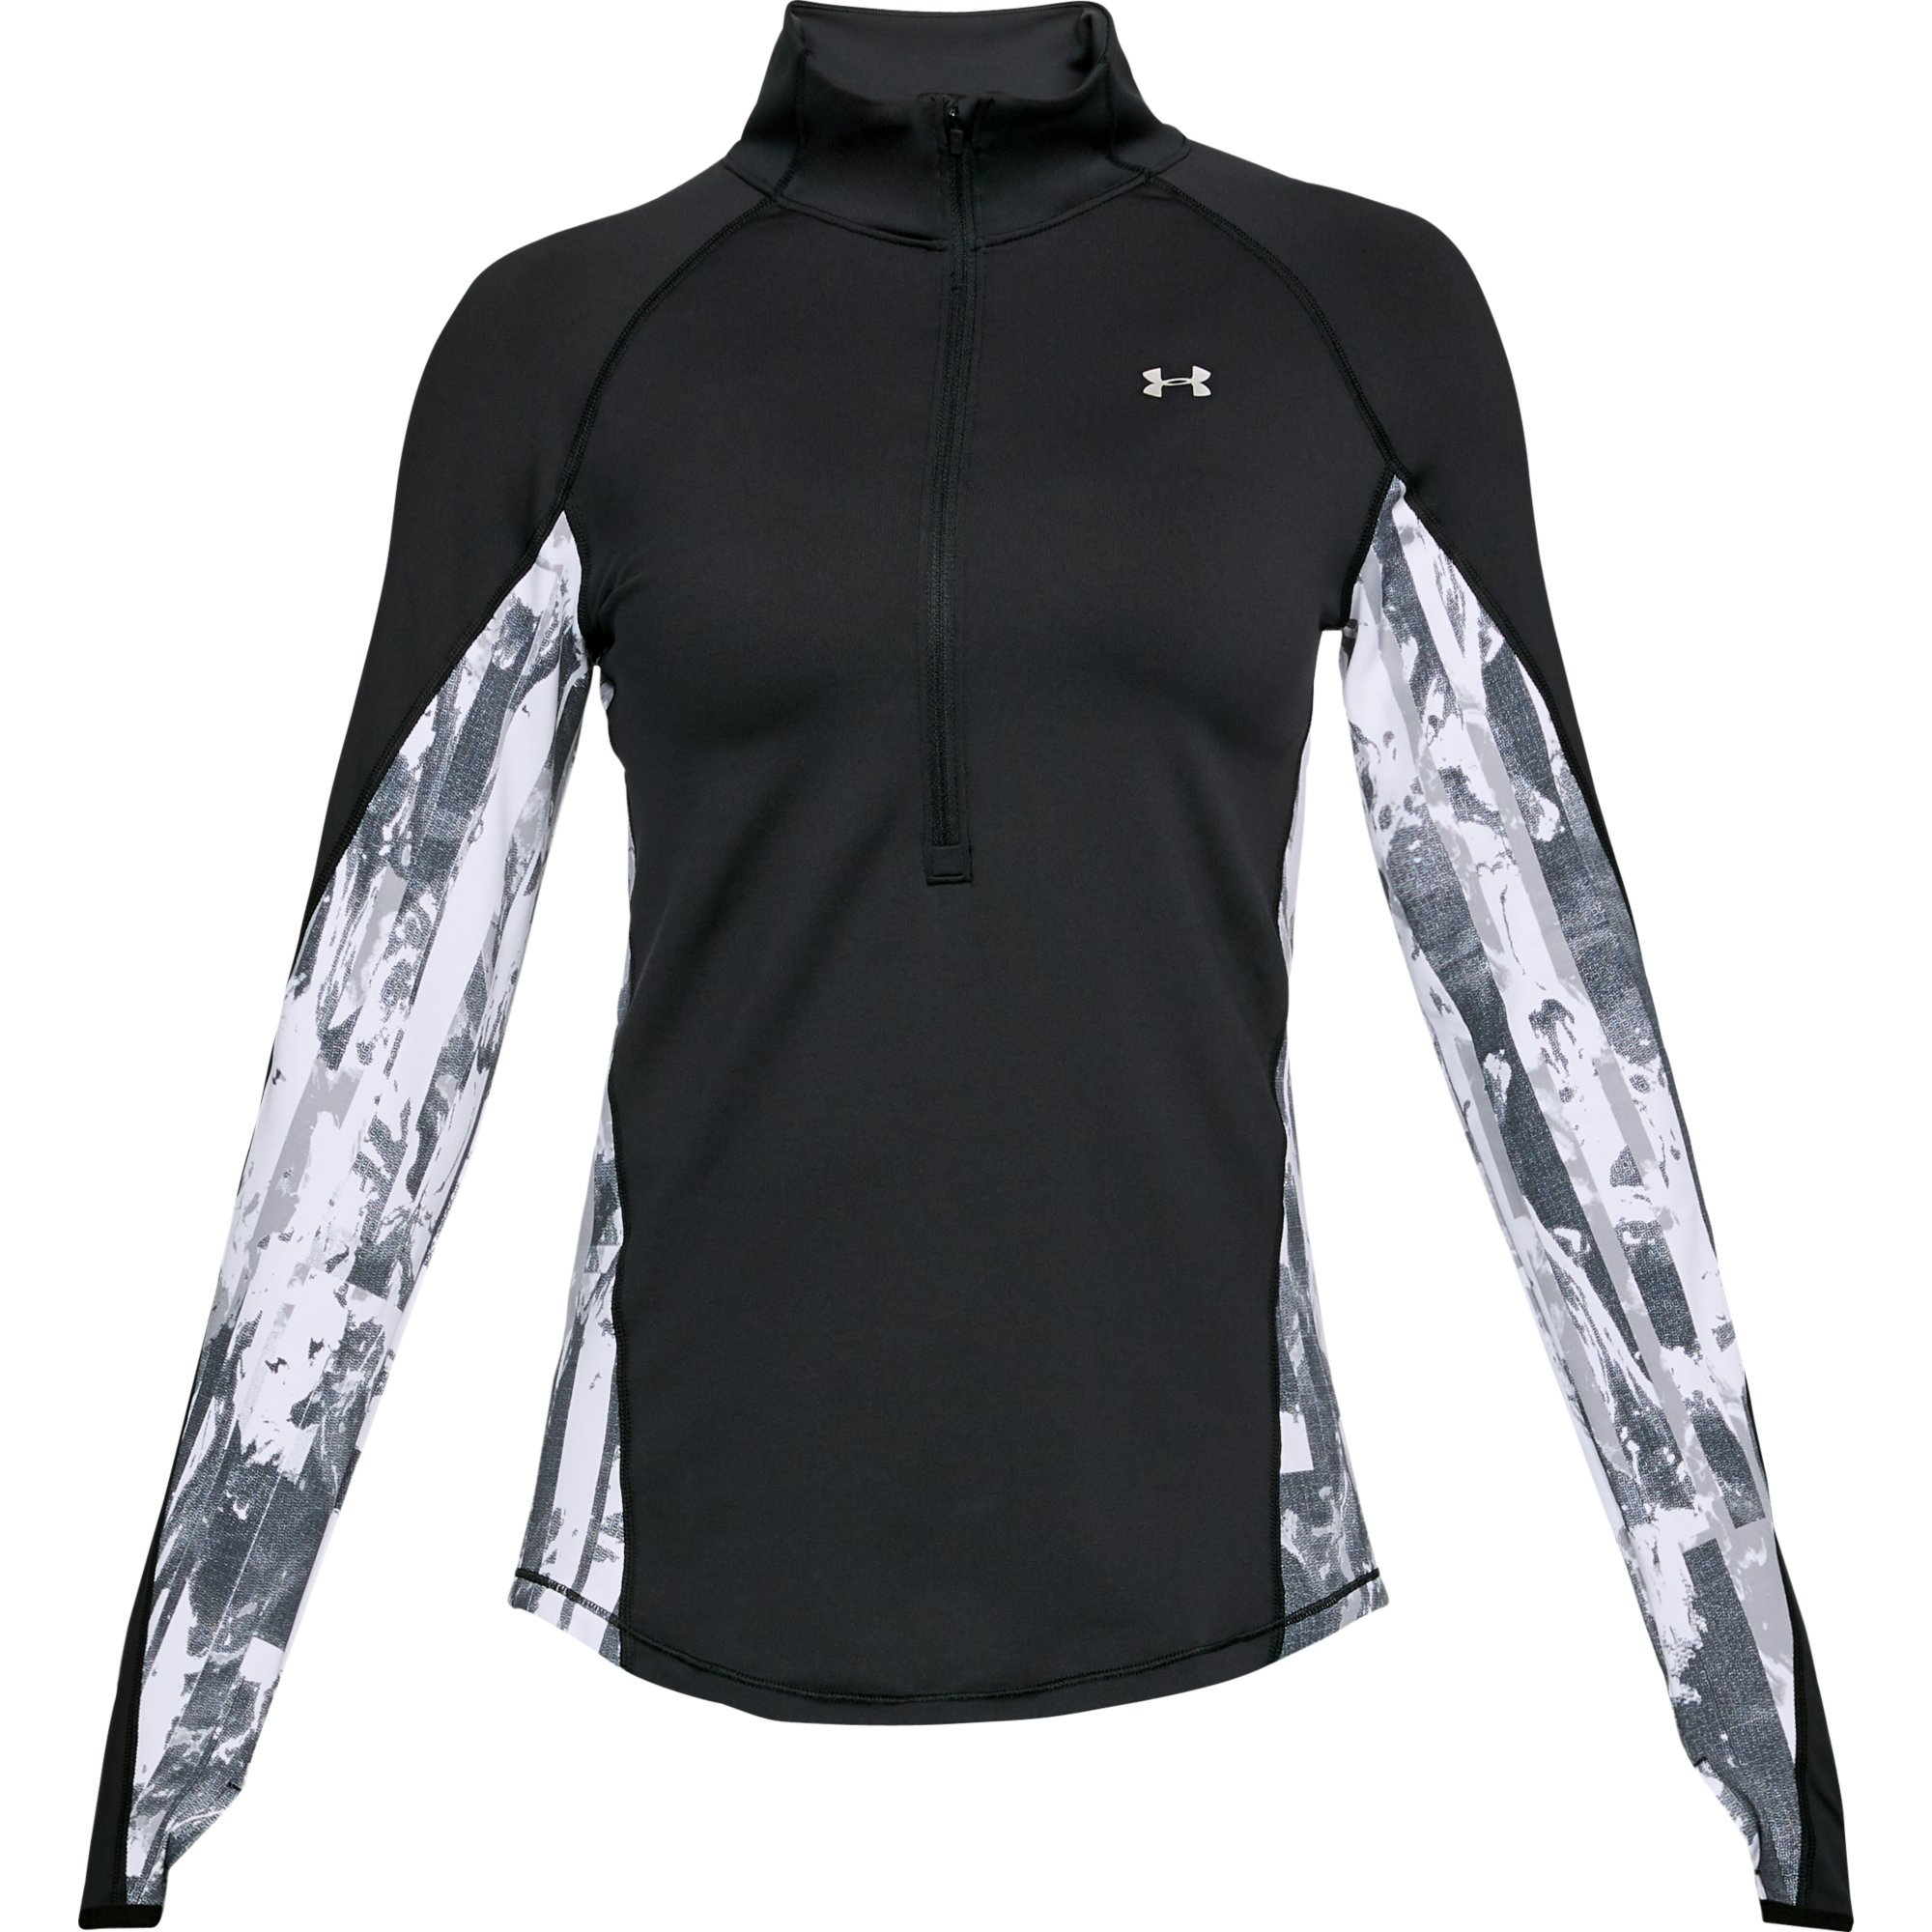 Under Armour ColdGear Armour Printed ½ Zip XL Black by Under Armour (Image #1)